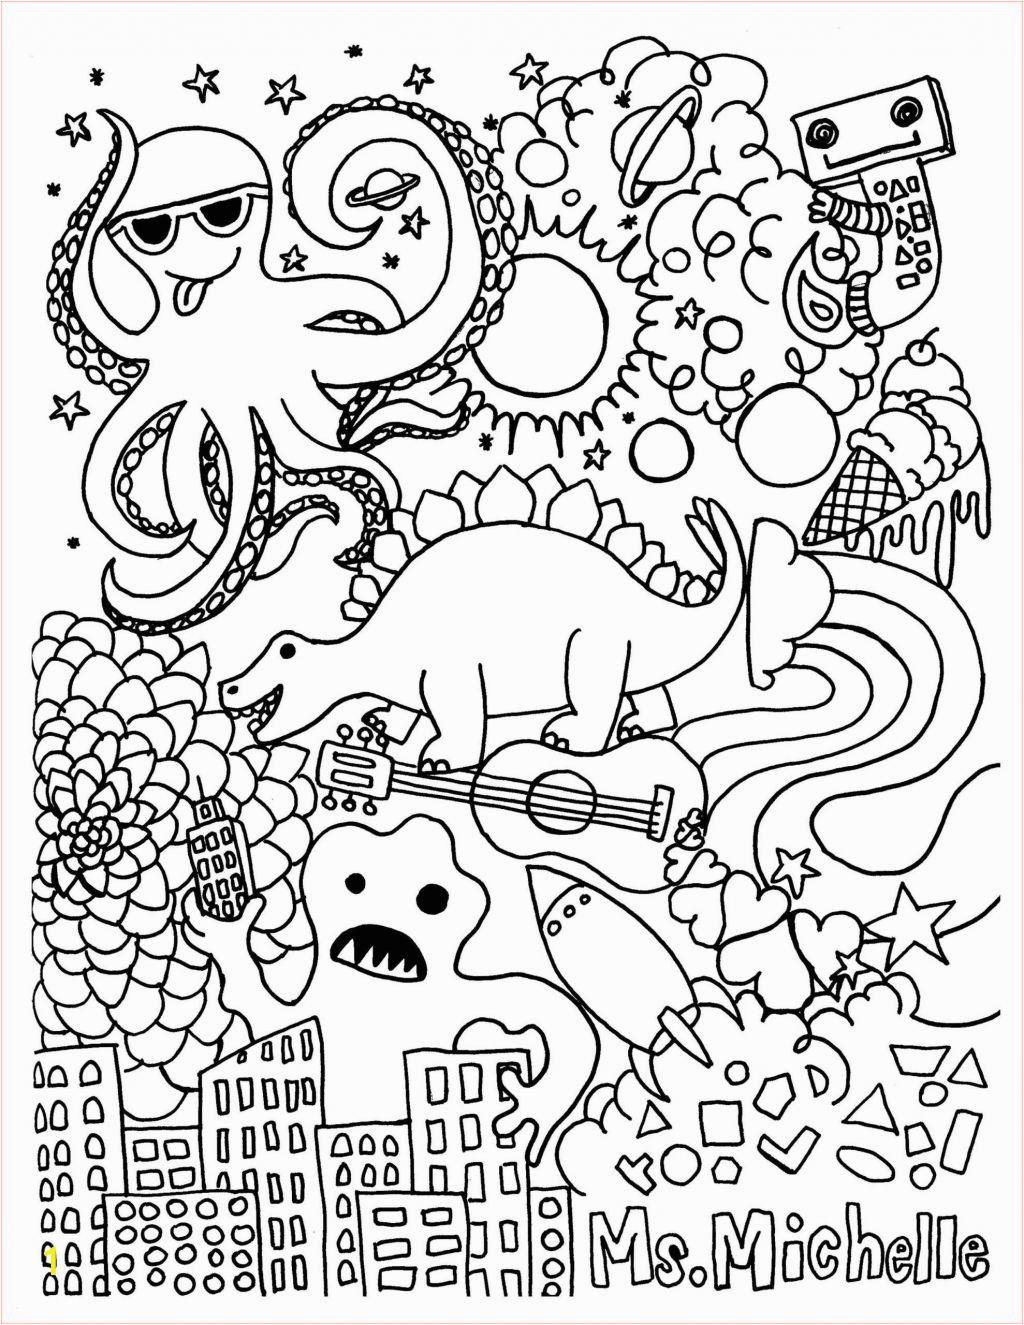 interactive coloring pages for adults online luxury coloring book halloween pages for kids free to print train of interactive coloring pages for adults online 1024x1325